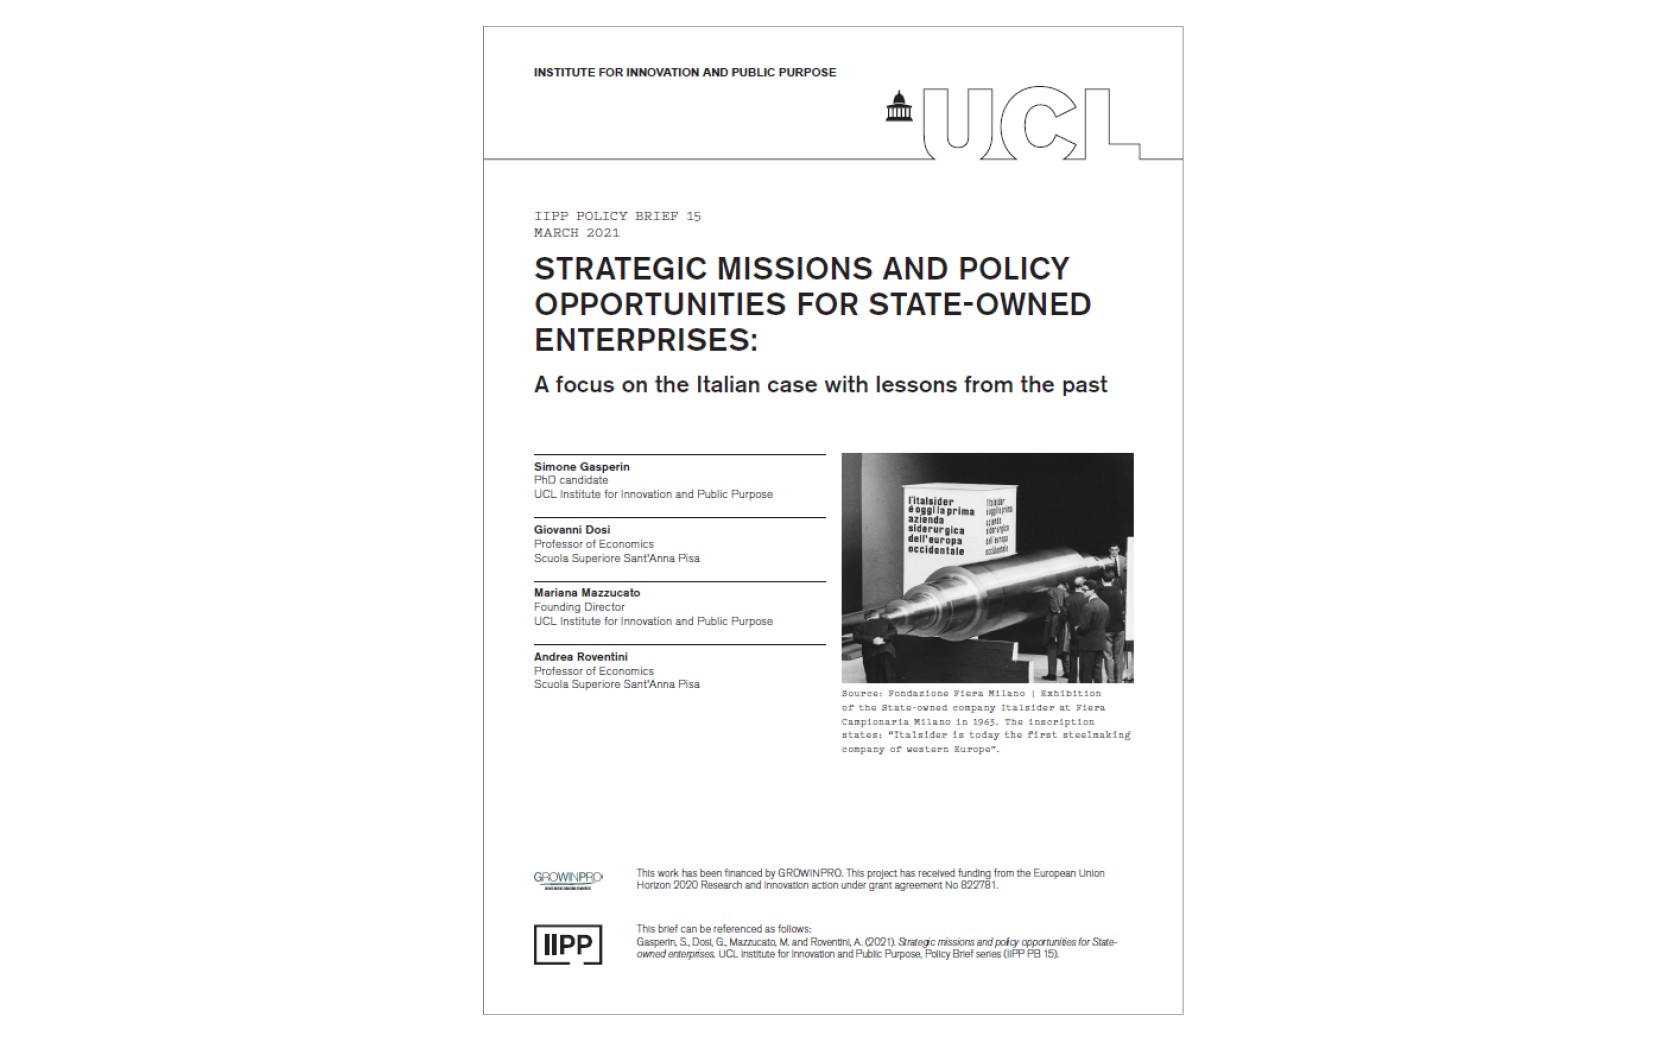 IIPP PB15: Strategic missions and policy opportunities for State-owned enterprises